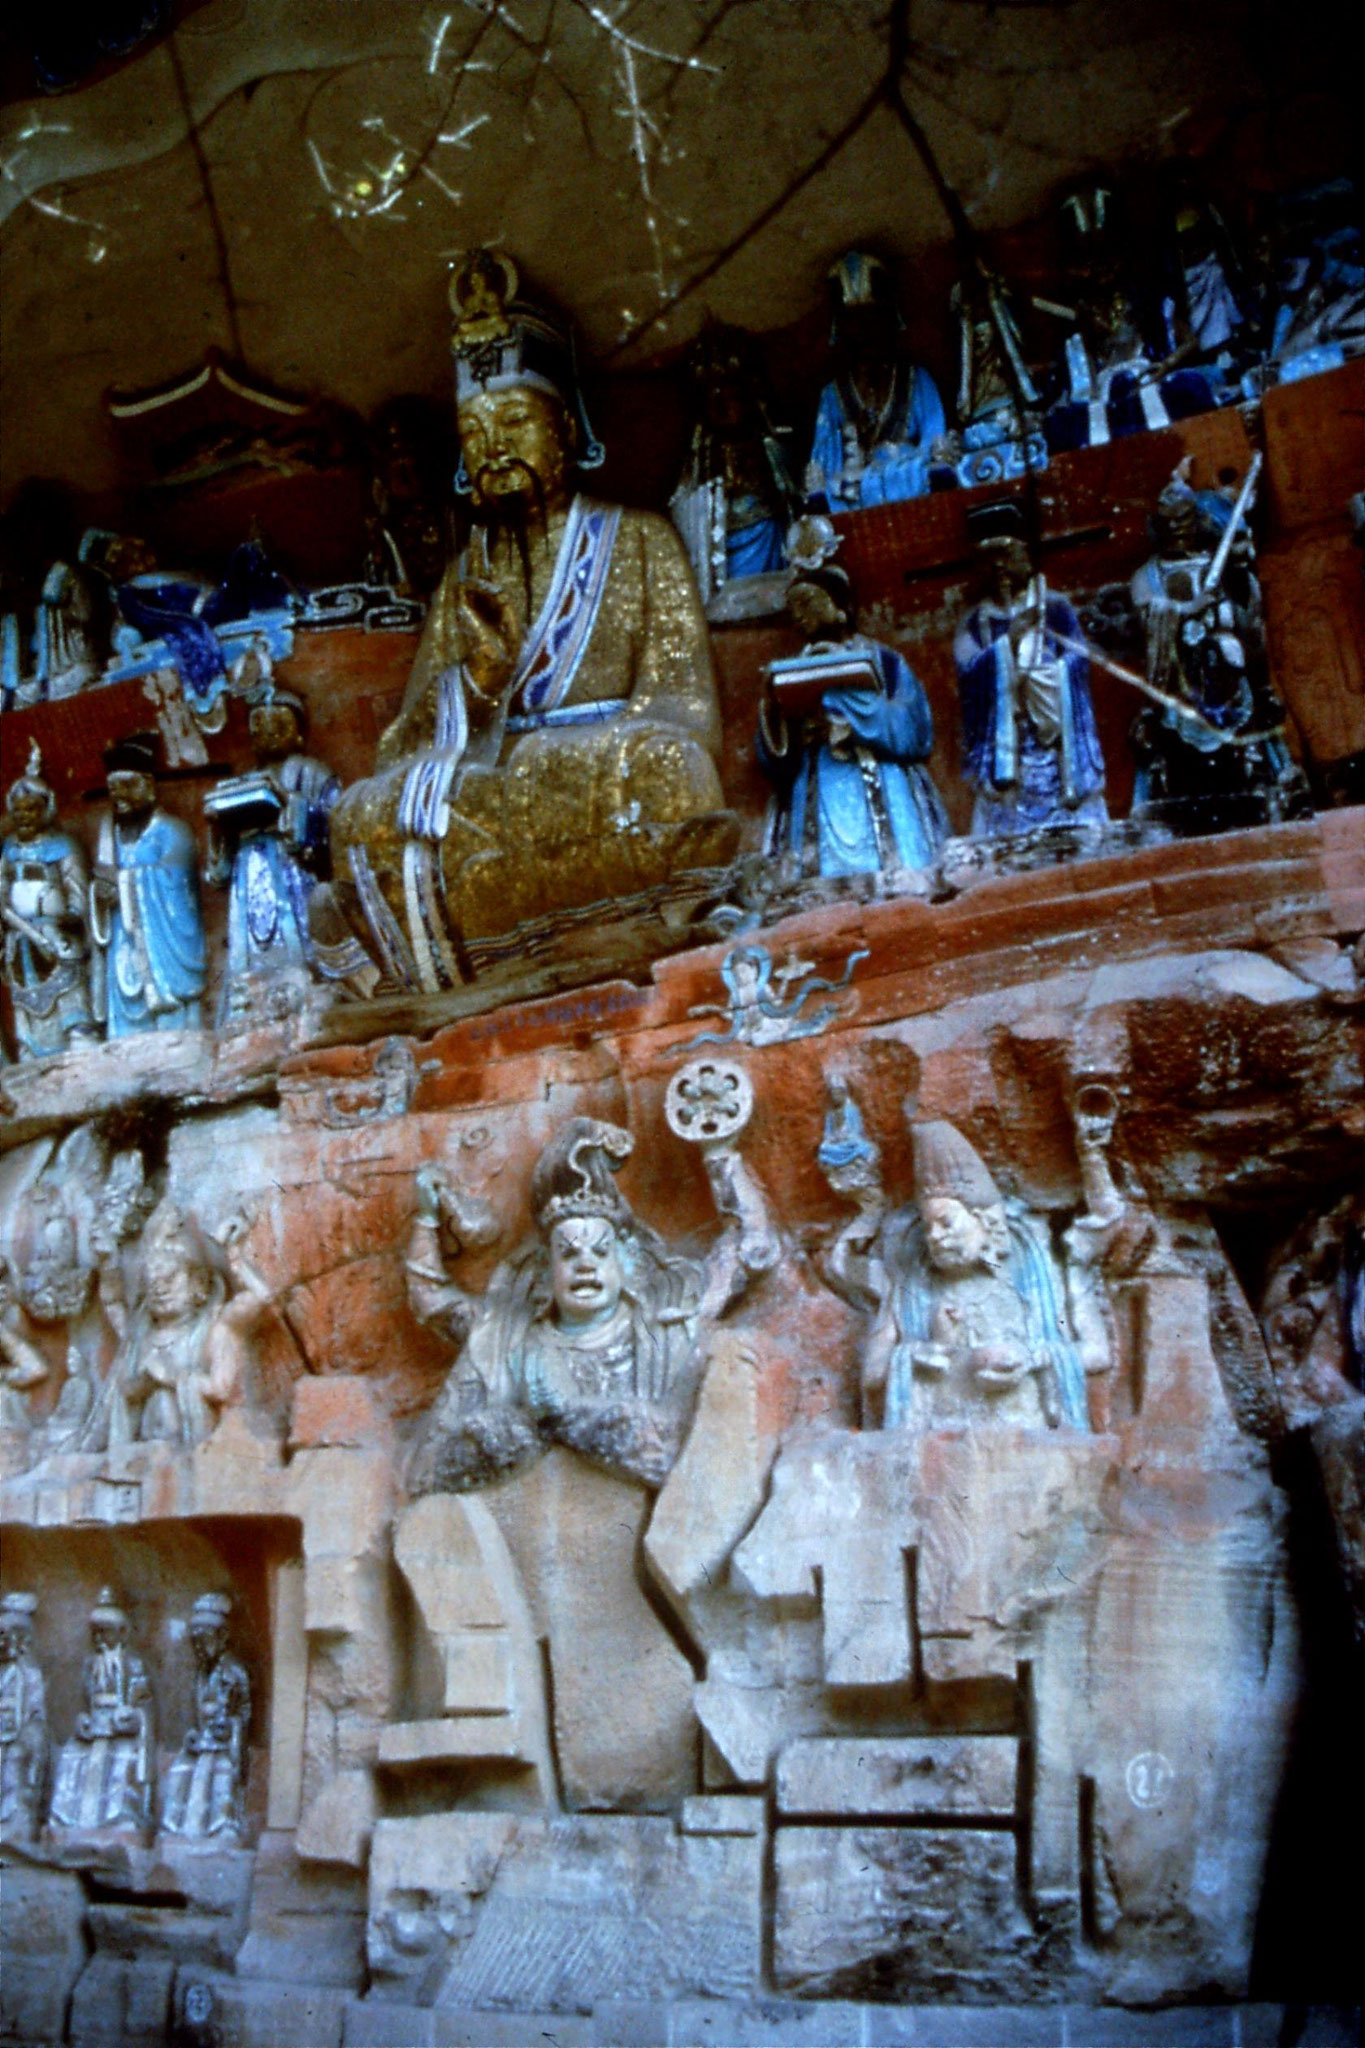 24/7/1989: 13: Putuo, Guanyin frieze